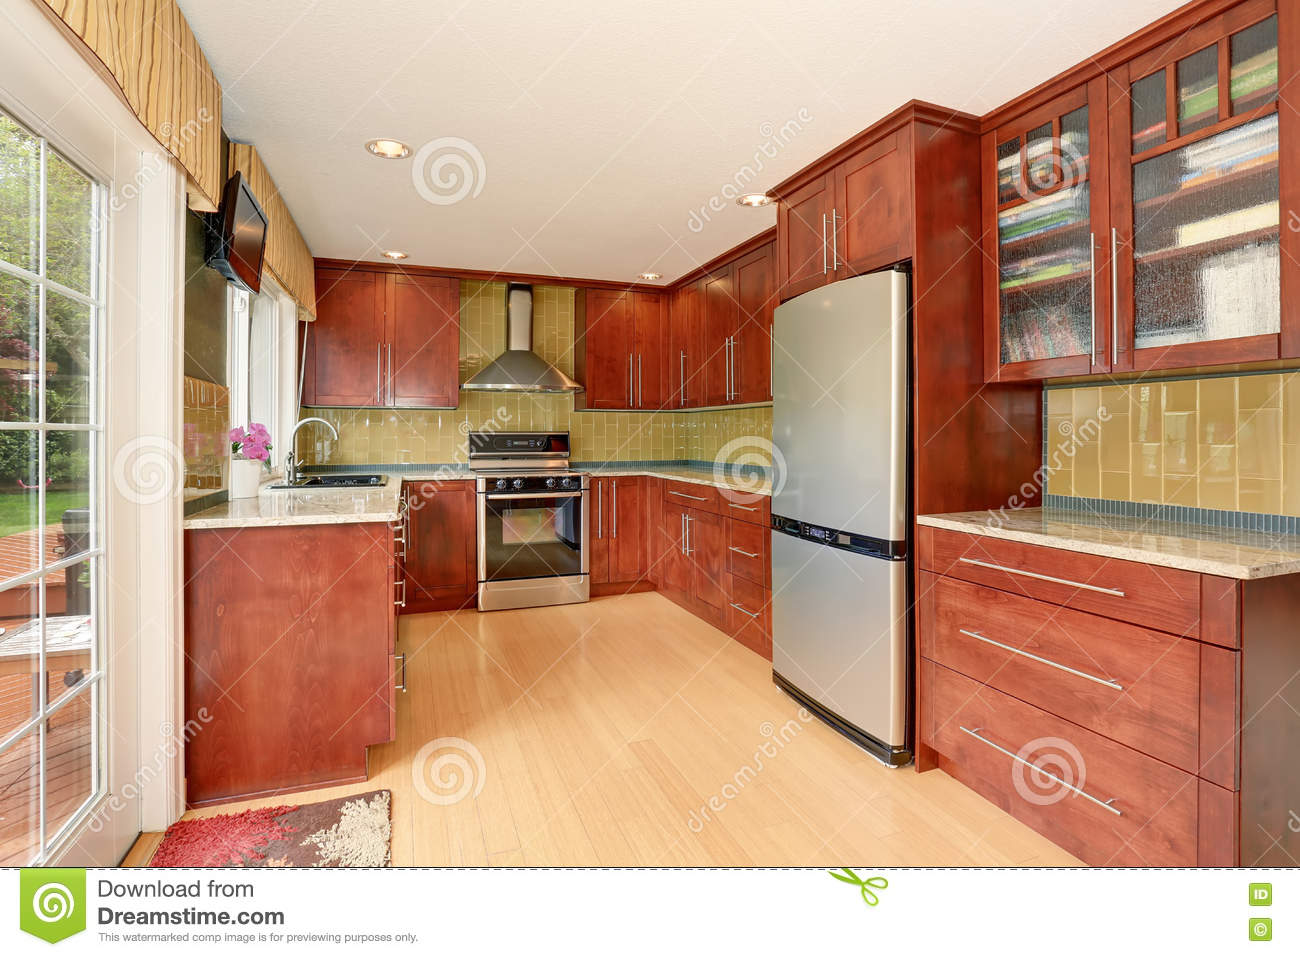 kitchen room interior kitchen room interior with modern brown cabinets and light 13771